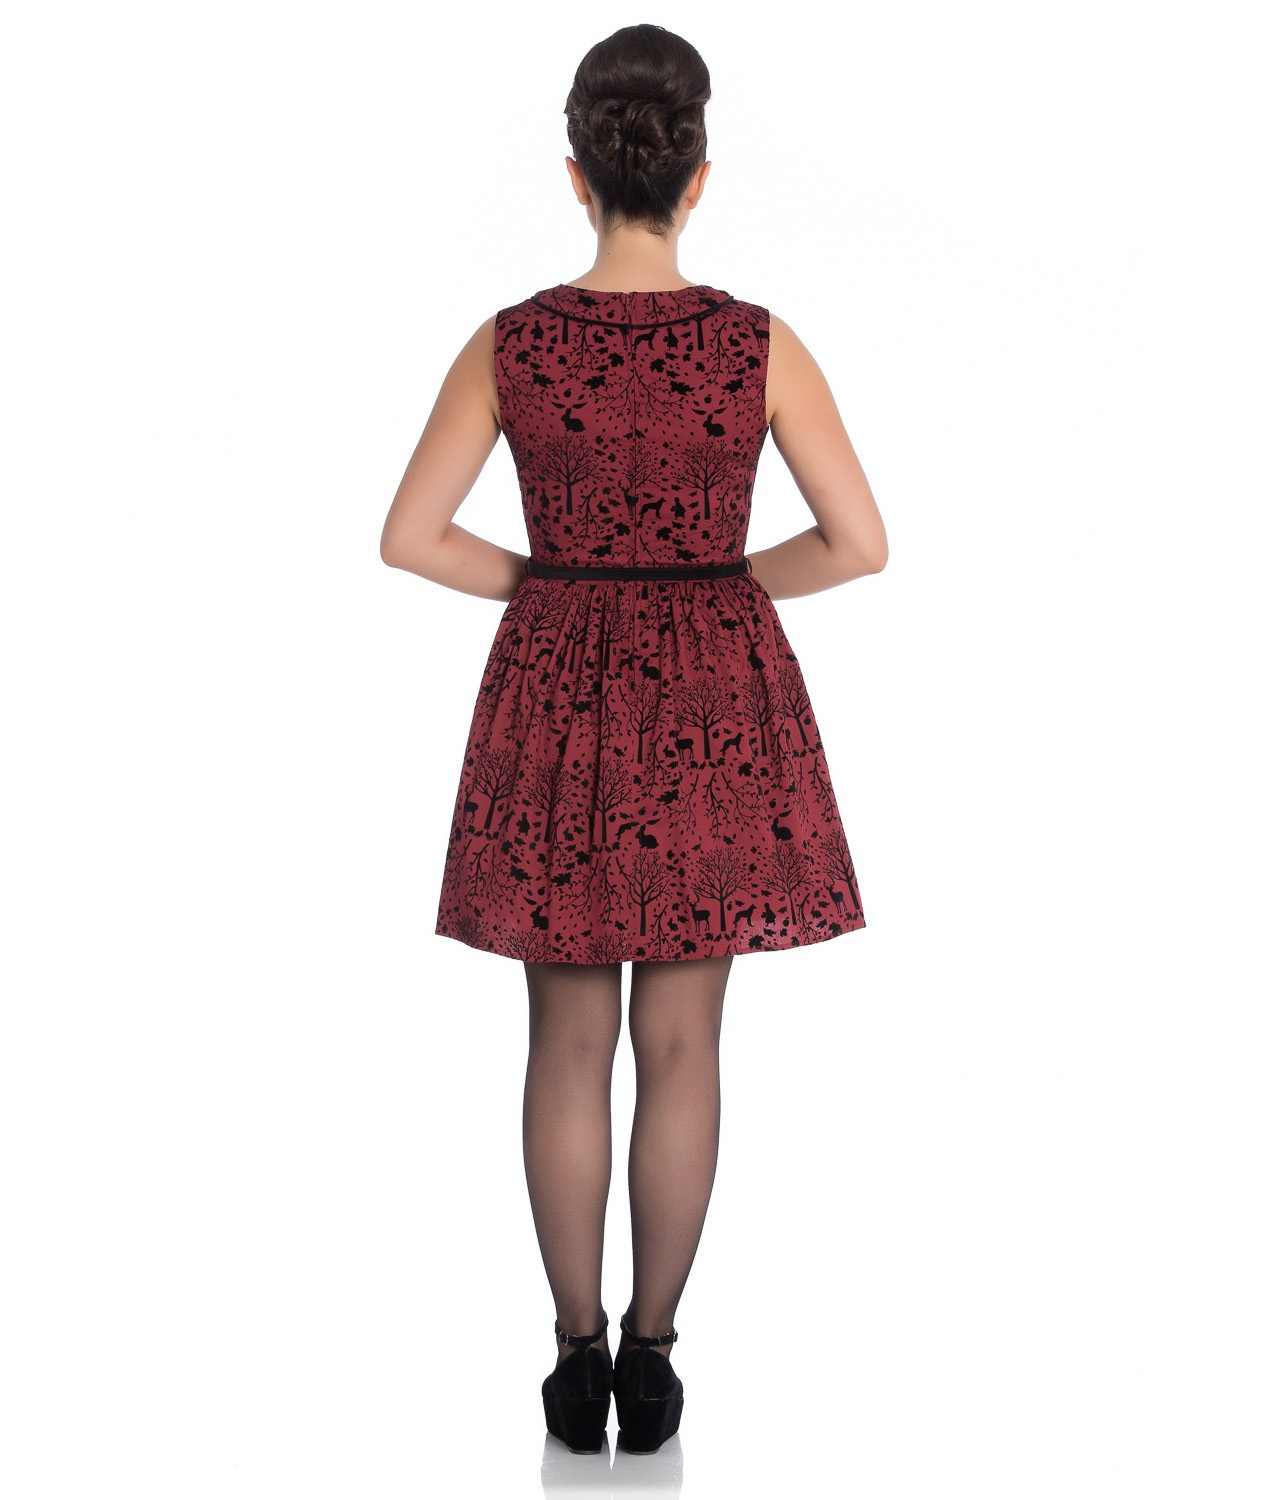 Hell-Bunny-50s-Mini-Skater-Dress-Woodland-Trees-SHERWOOD-Black-Red-All-Sizes thumbnail 29